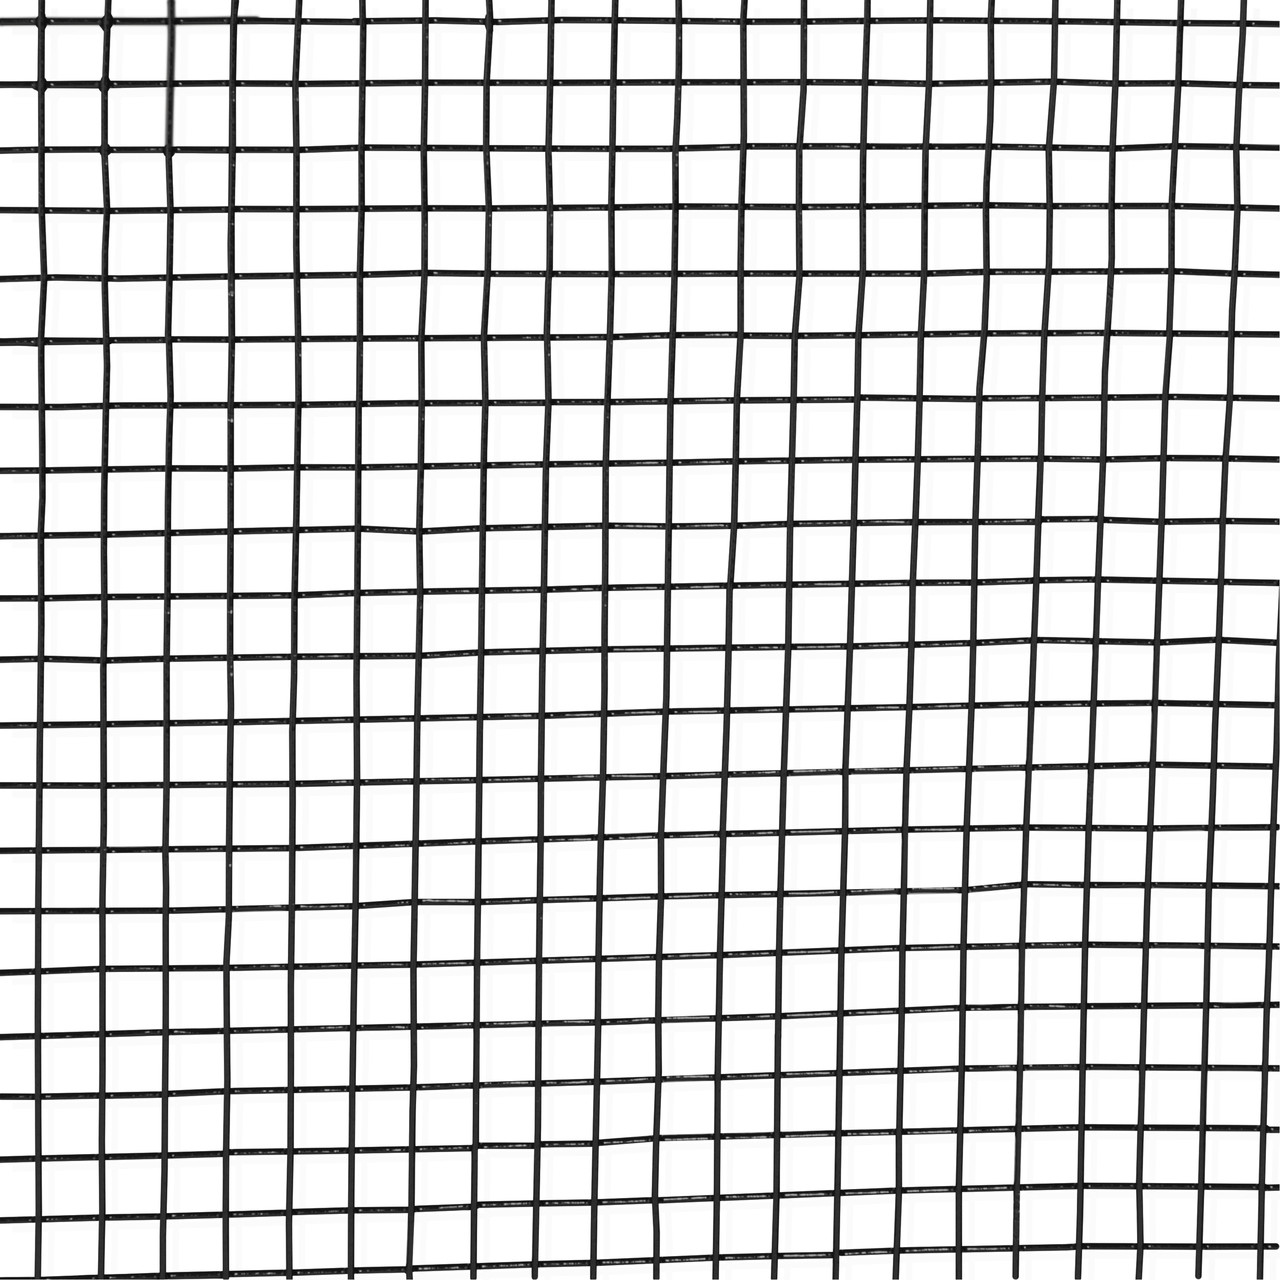 Cool welded wire mesh sizes ideas electrical wiring diagram 16 gauge black vinyl coated welded wire mesh size 05 inch by 05 greentooth Images